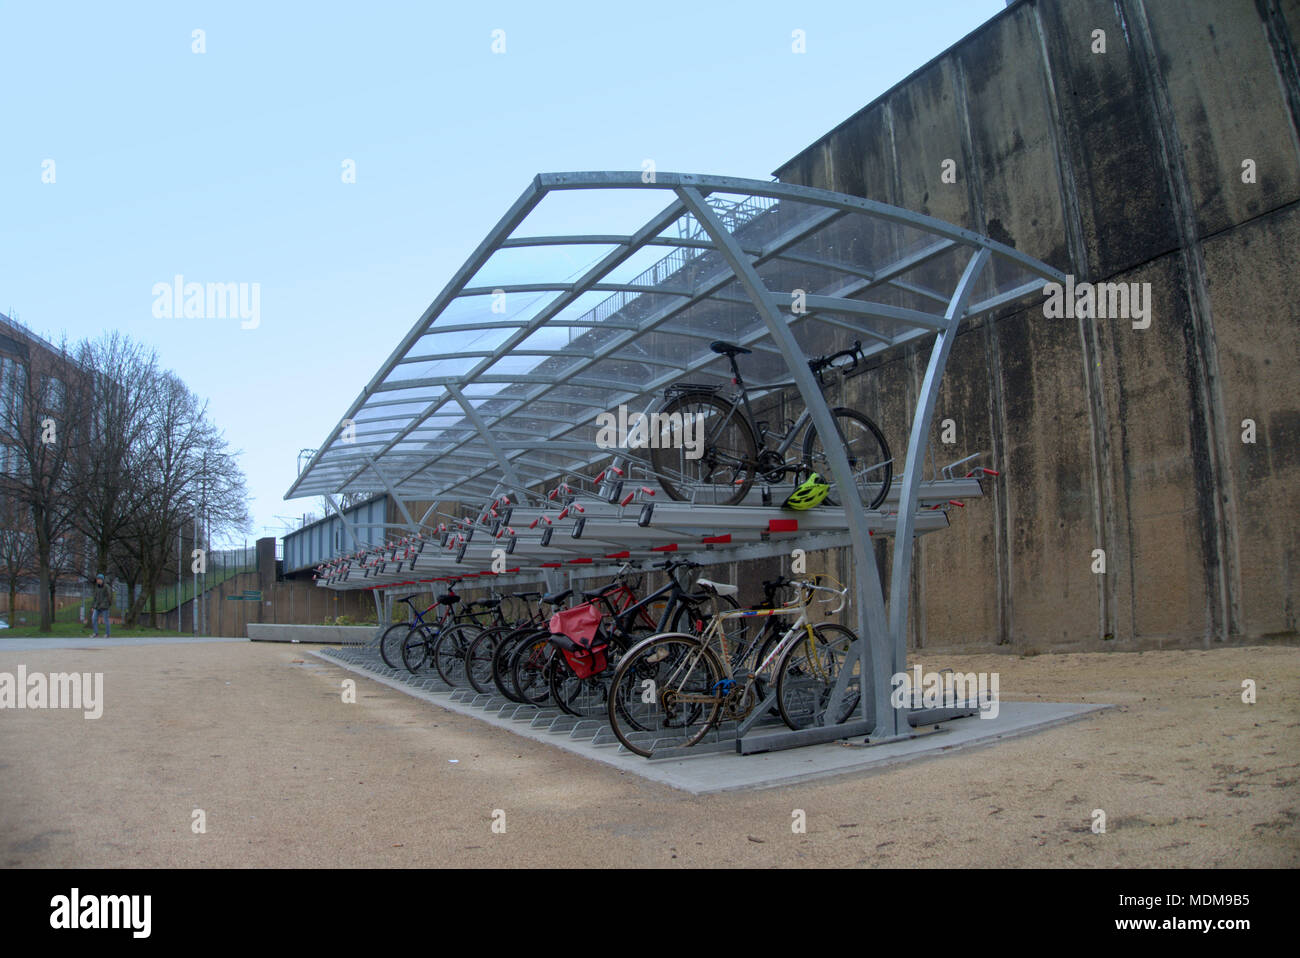 Partick station transport hub subway bus  train commuter cycle parking solution bicycle shelter enclosure  rack hub metal compound canopy tier tiered - Stock Image